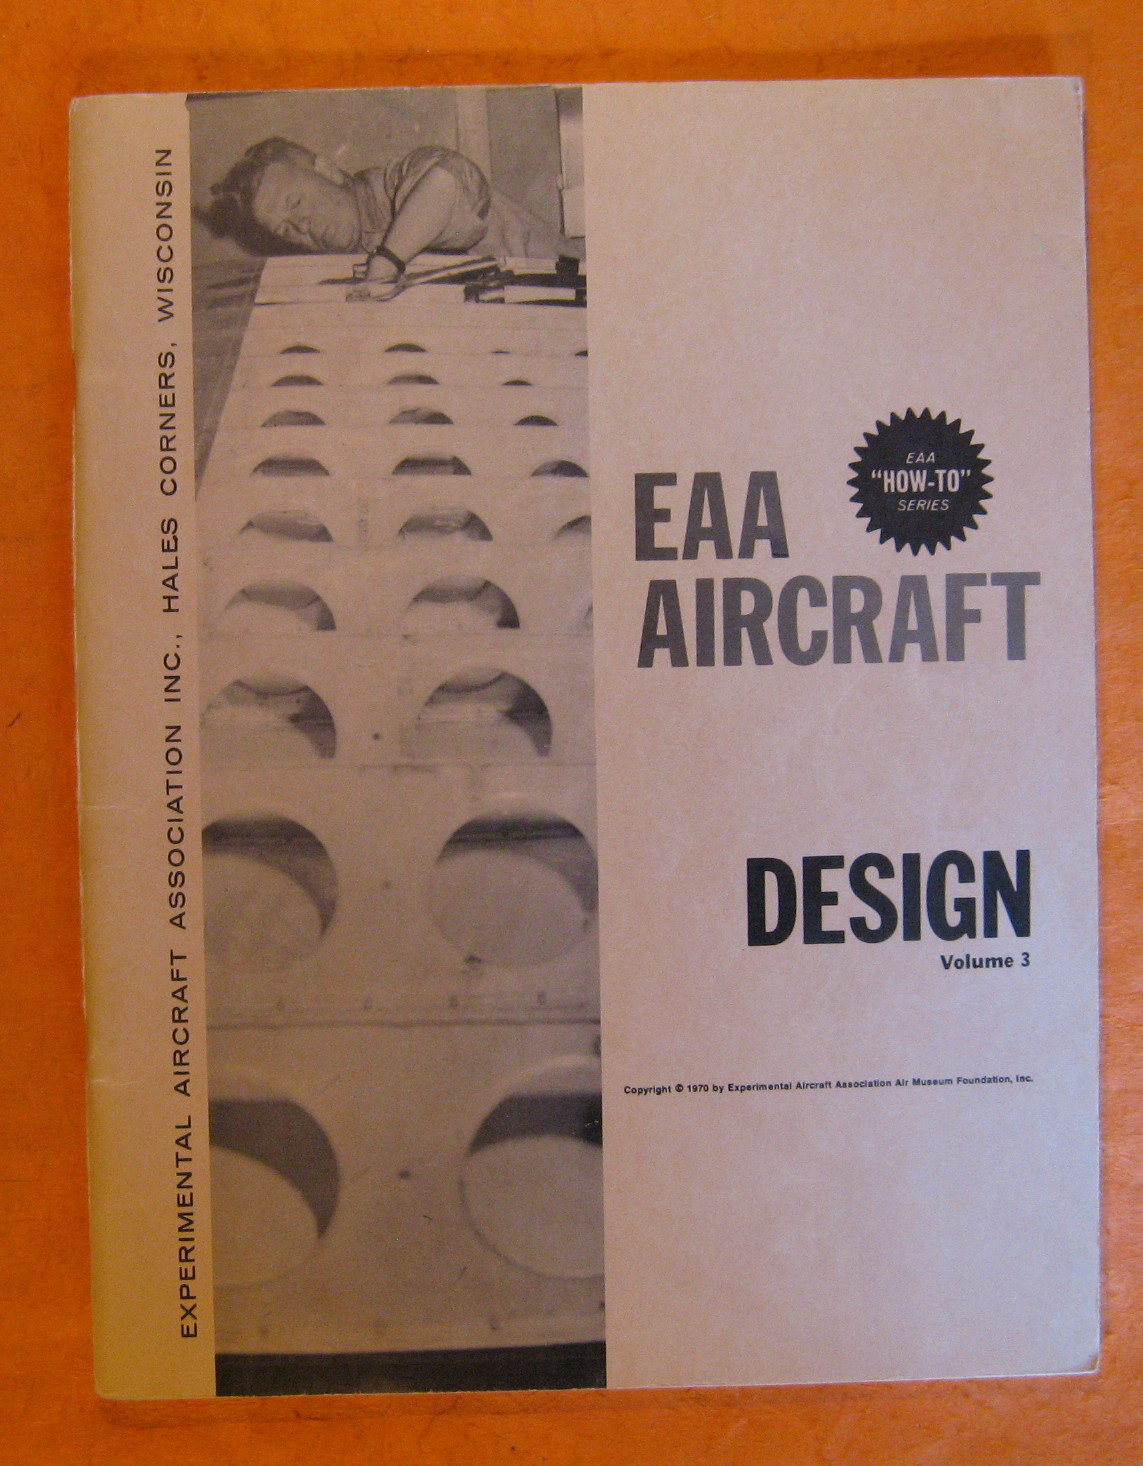 EAA Aircraft: Design Volume 3, No Author